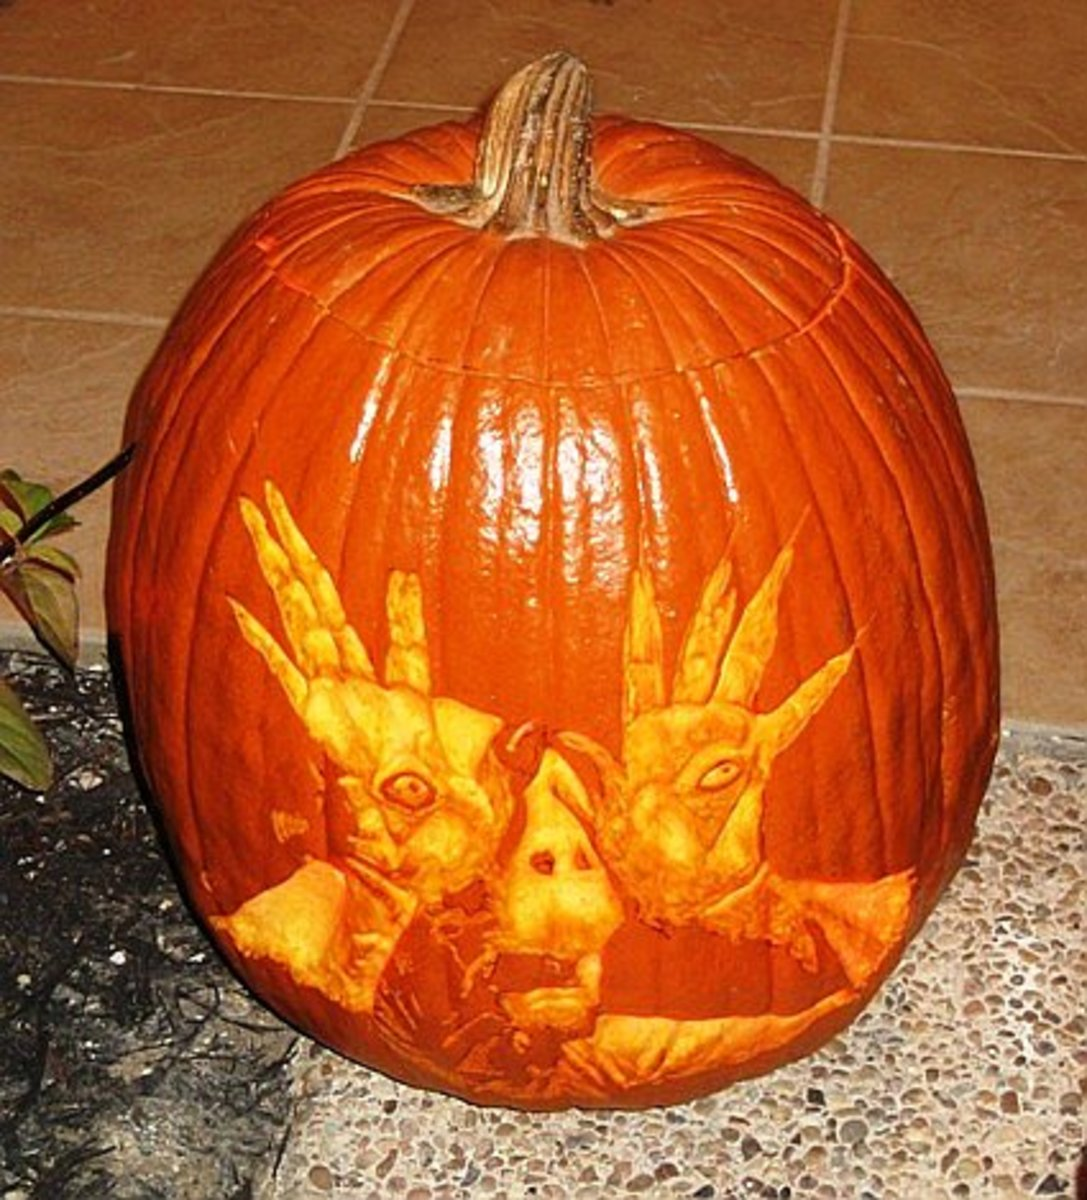 Creative spooky pumpkin carving ideas hubpages